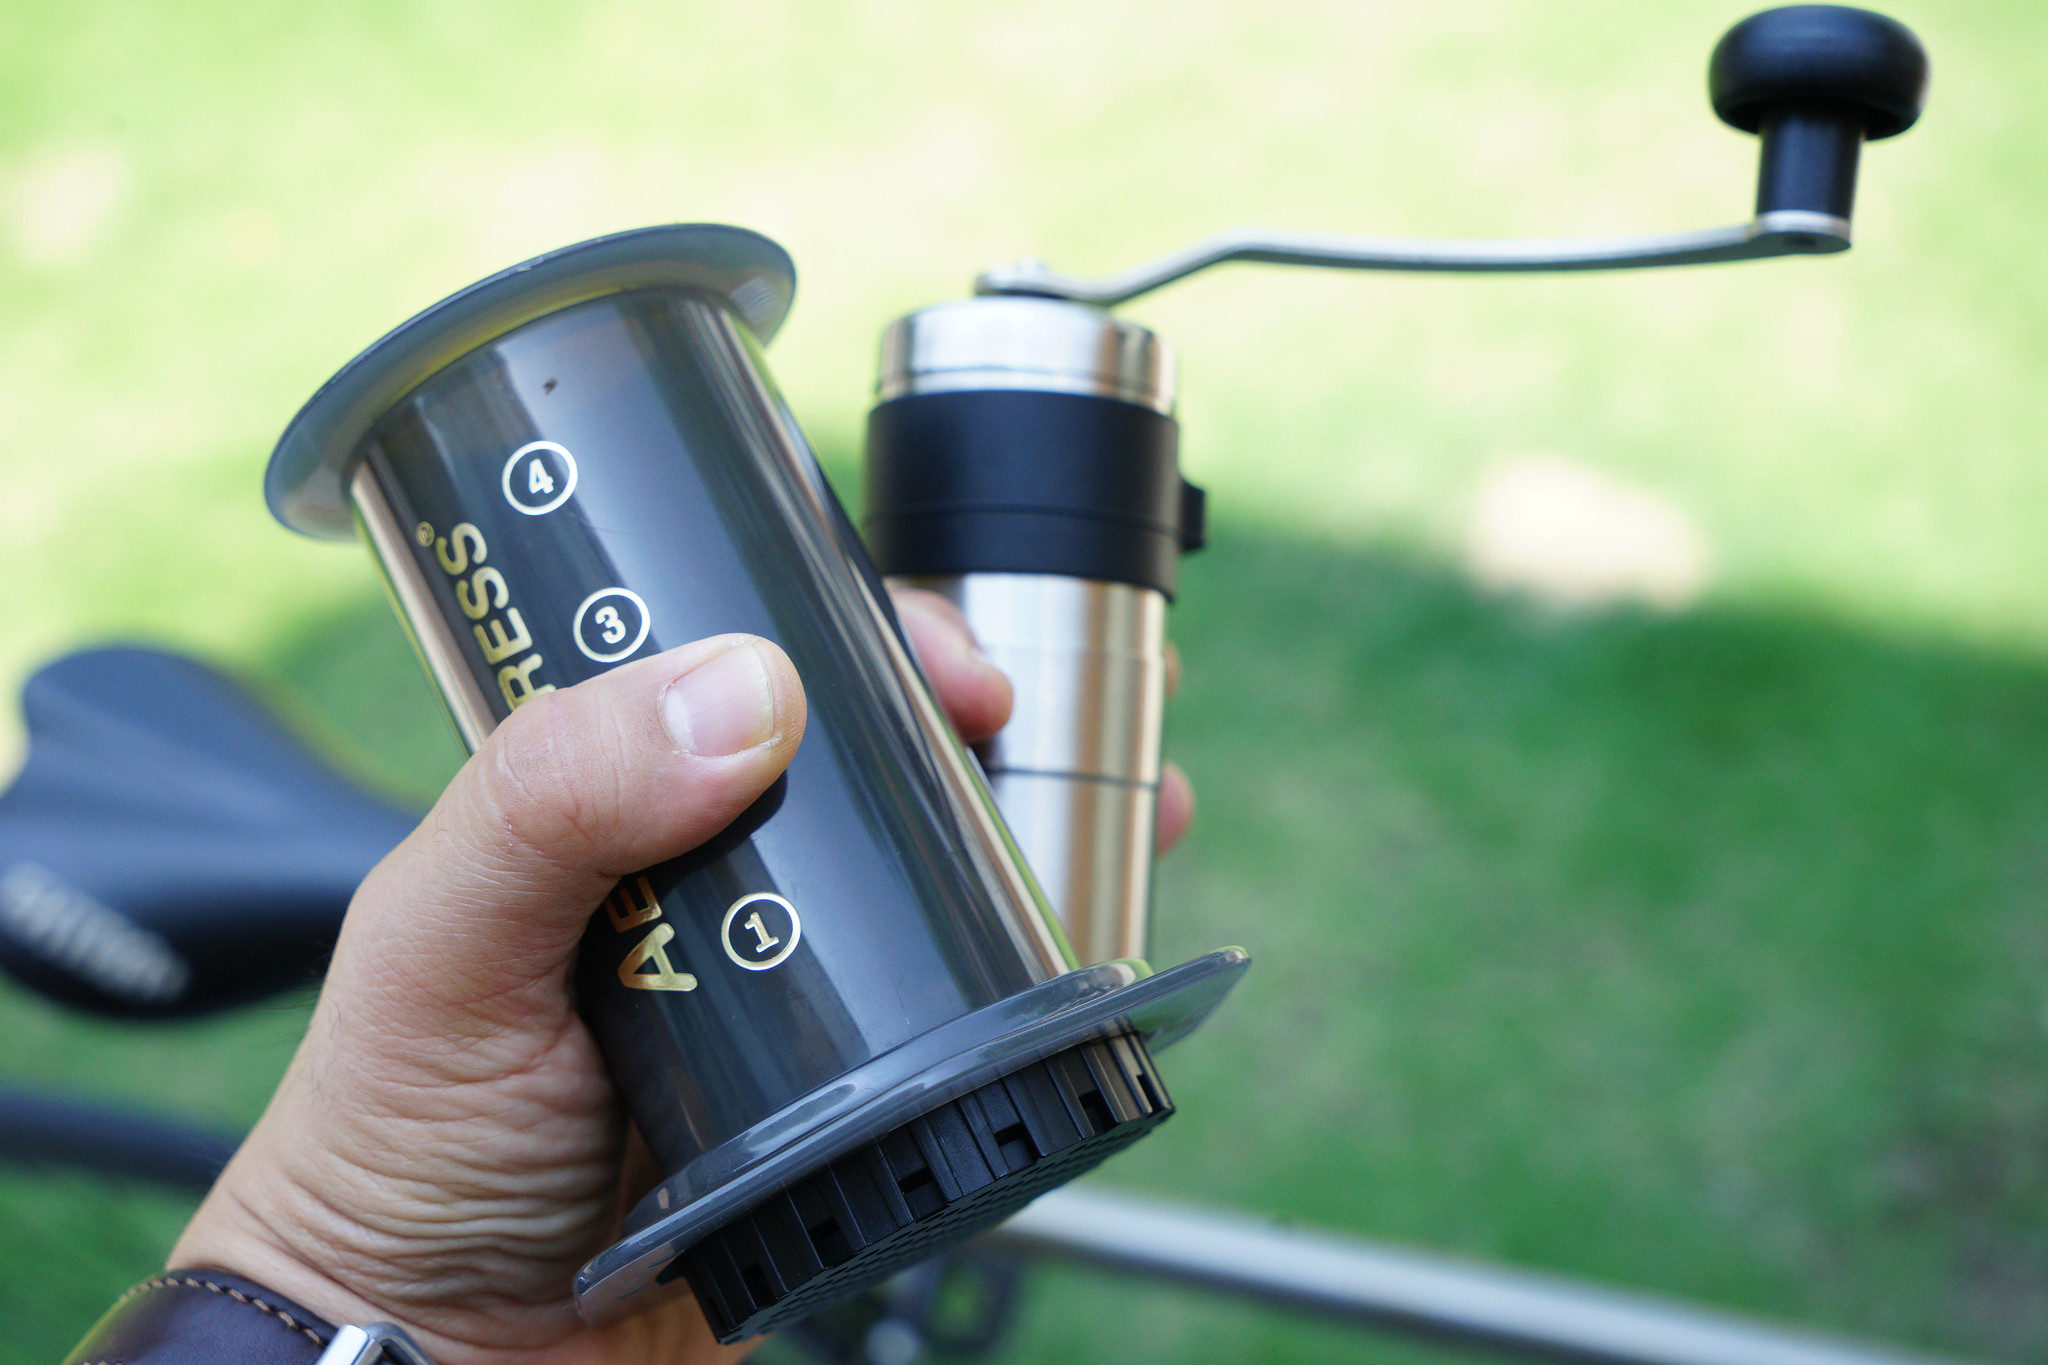 an aeropress and portable coffee grinder held in a hand